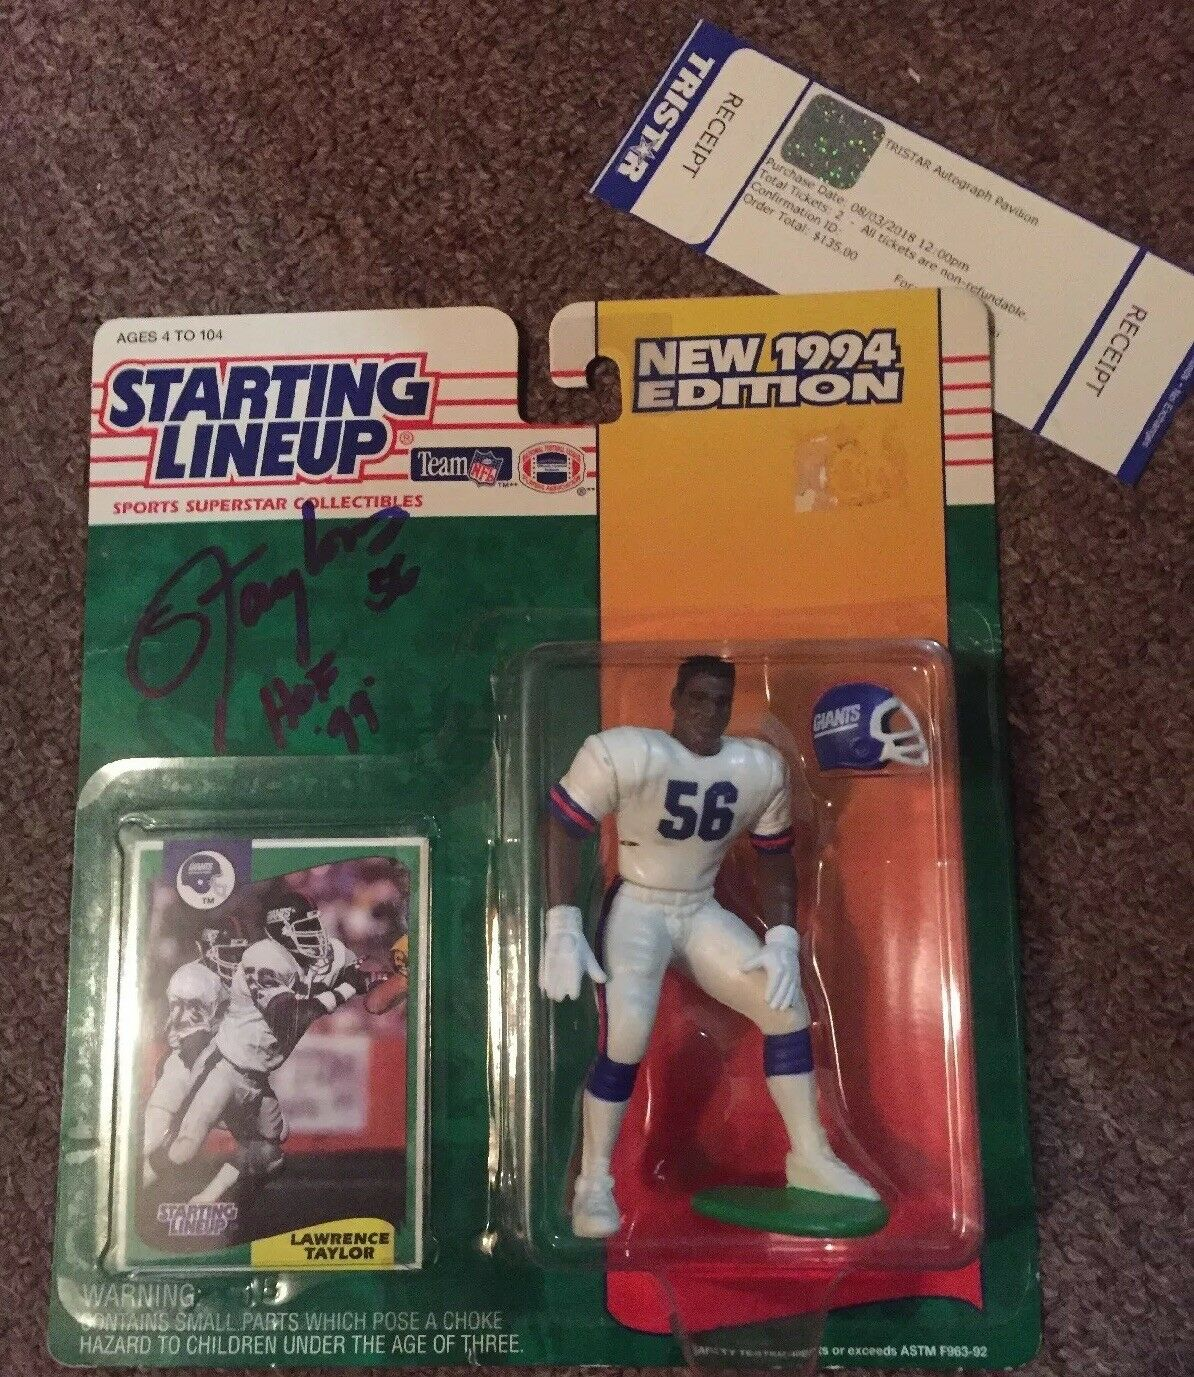 Lawrence Taylor Signed/ Autographed 1994 Starting Lineup... Tristar Certified